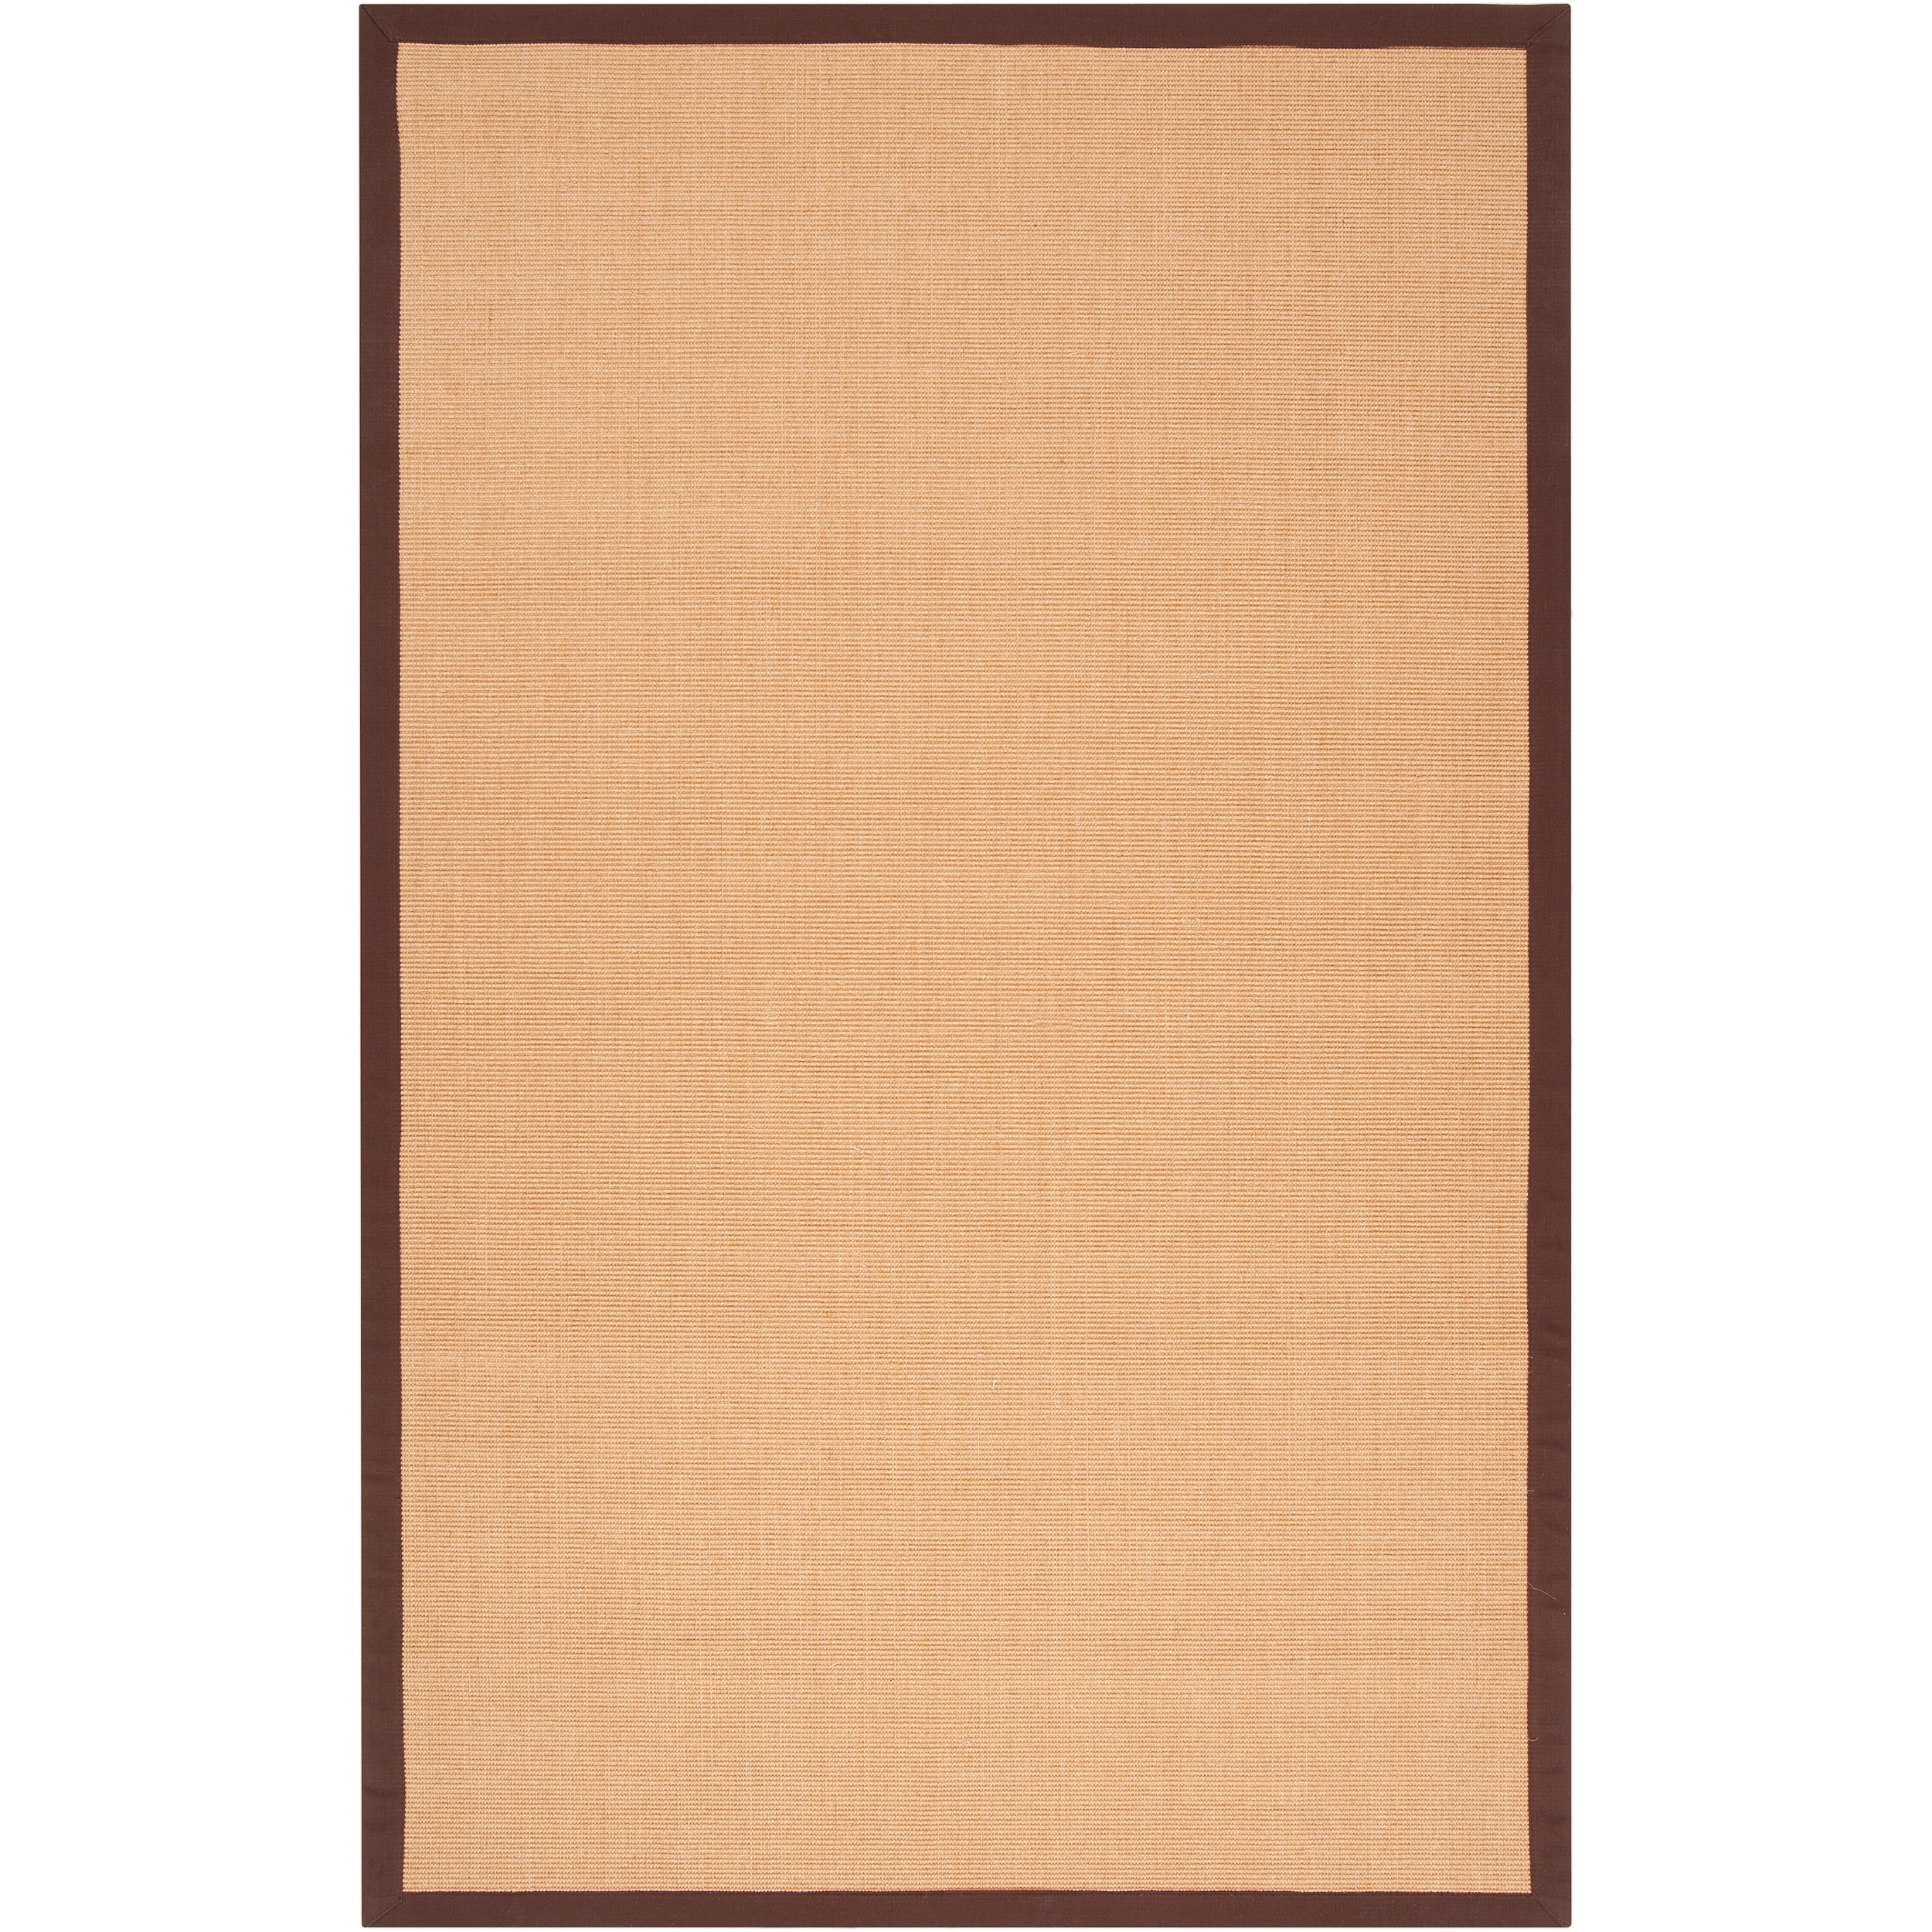 Woven Brown Hillsborough West Natural Fiber Sisal Area Rug (6' x 9')